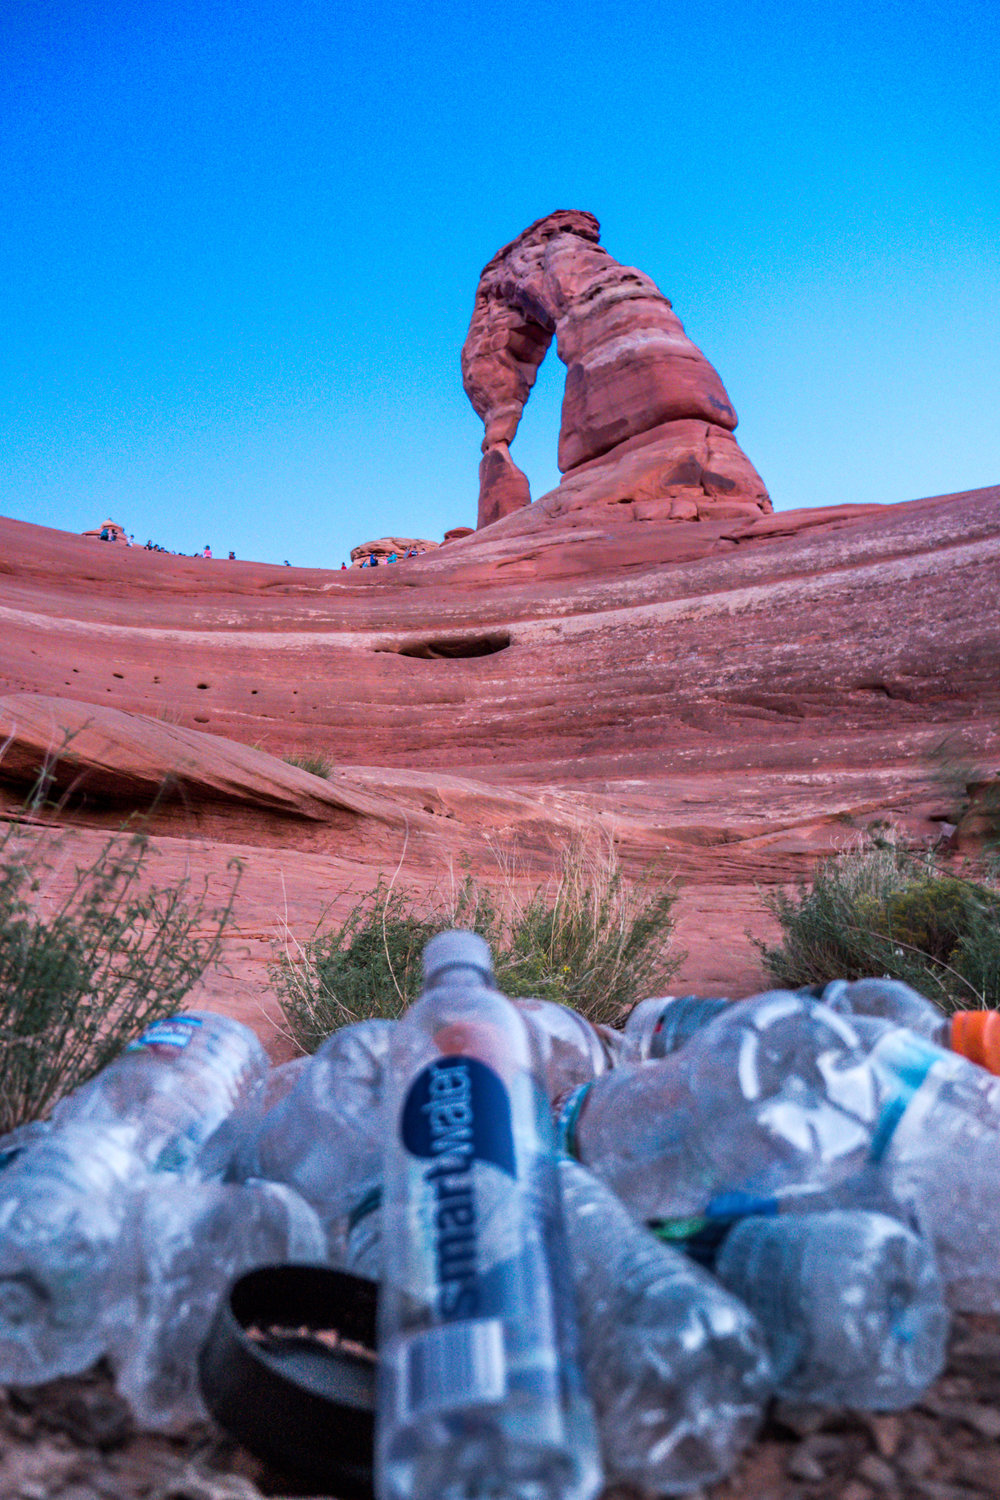 Over 40 bottles and other pieces of trash fell down below Delicate Arch in Arches National Park